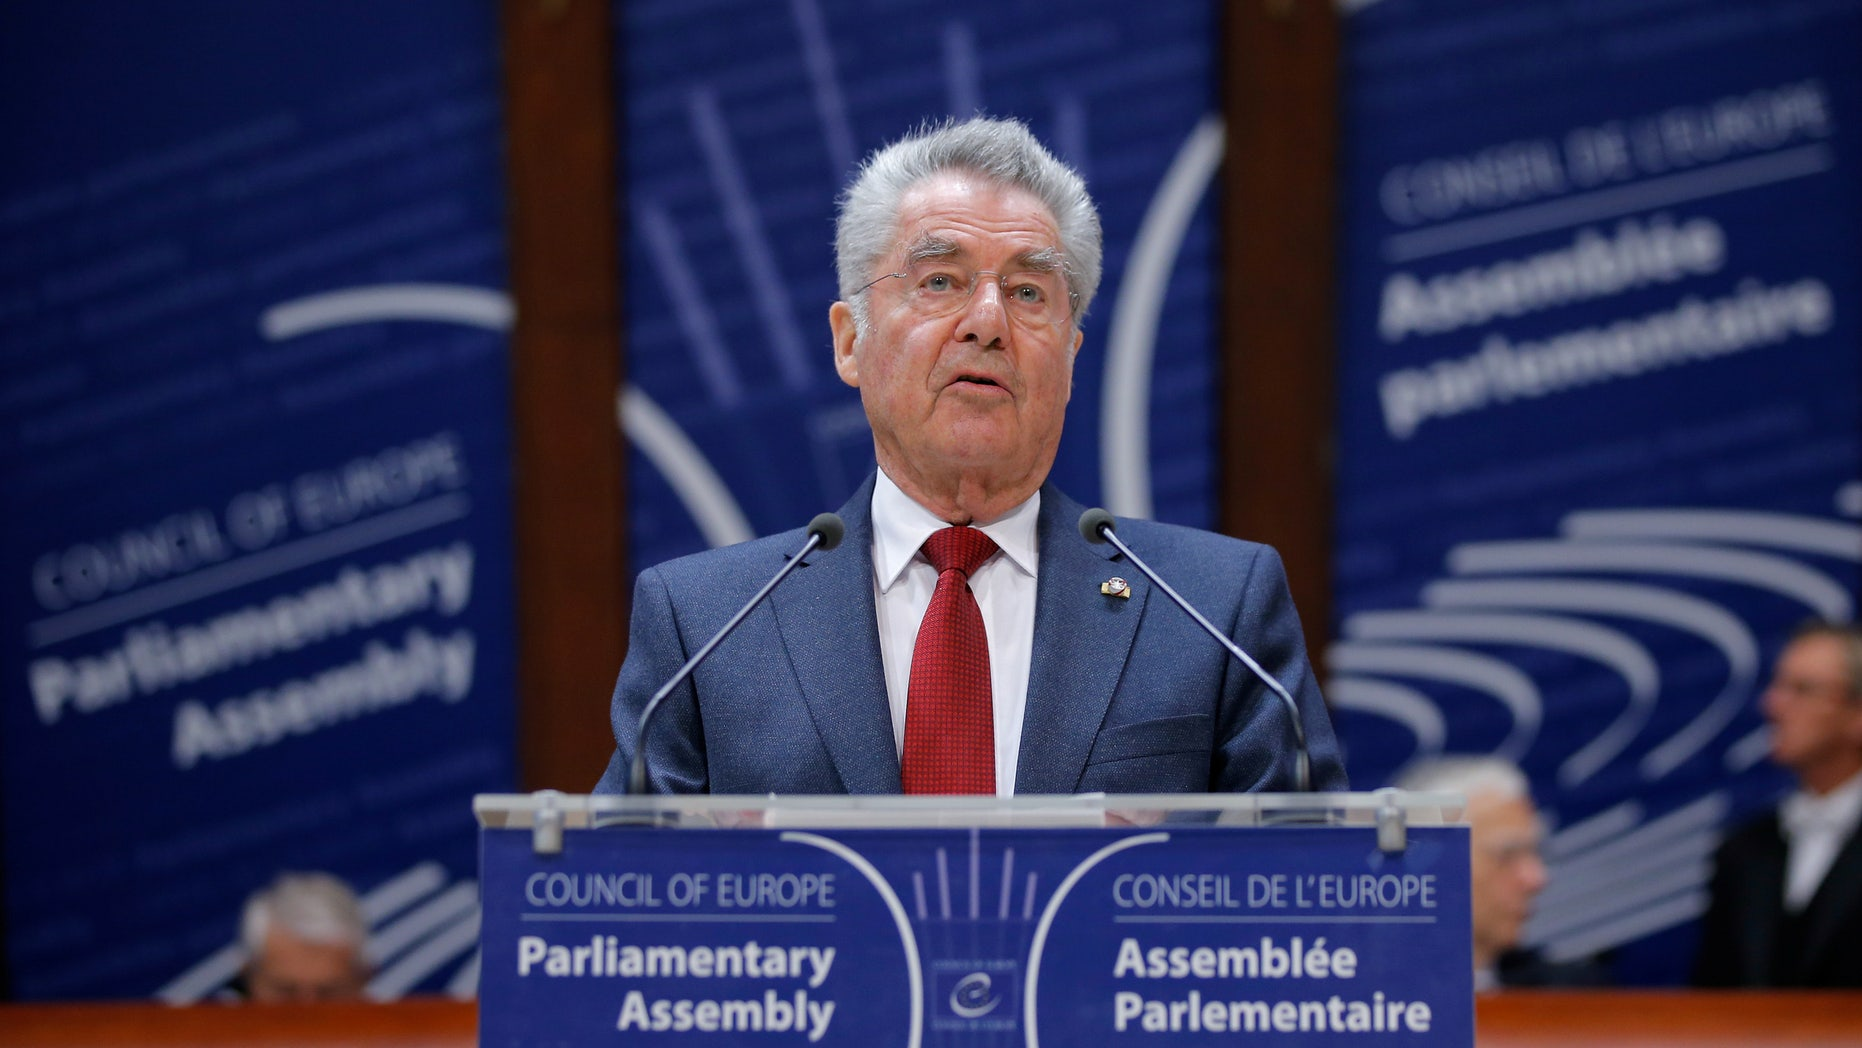 April 20, 2016: Austrian President Heinz Fischer addresses the Parliamentary Assembly of the Council of Europe in Strasbourg, France. (Reuters)